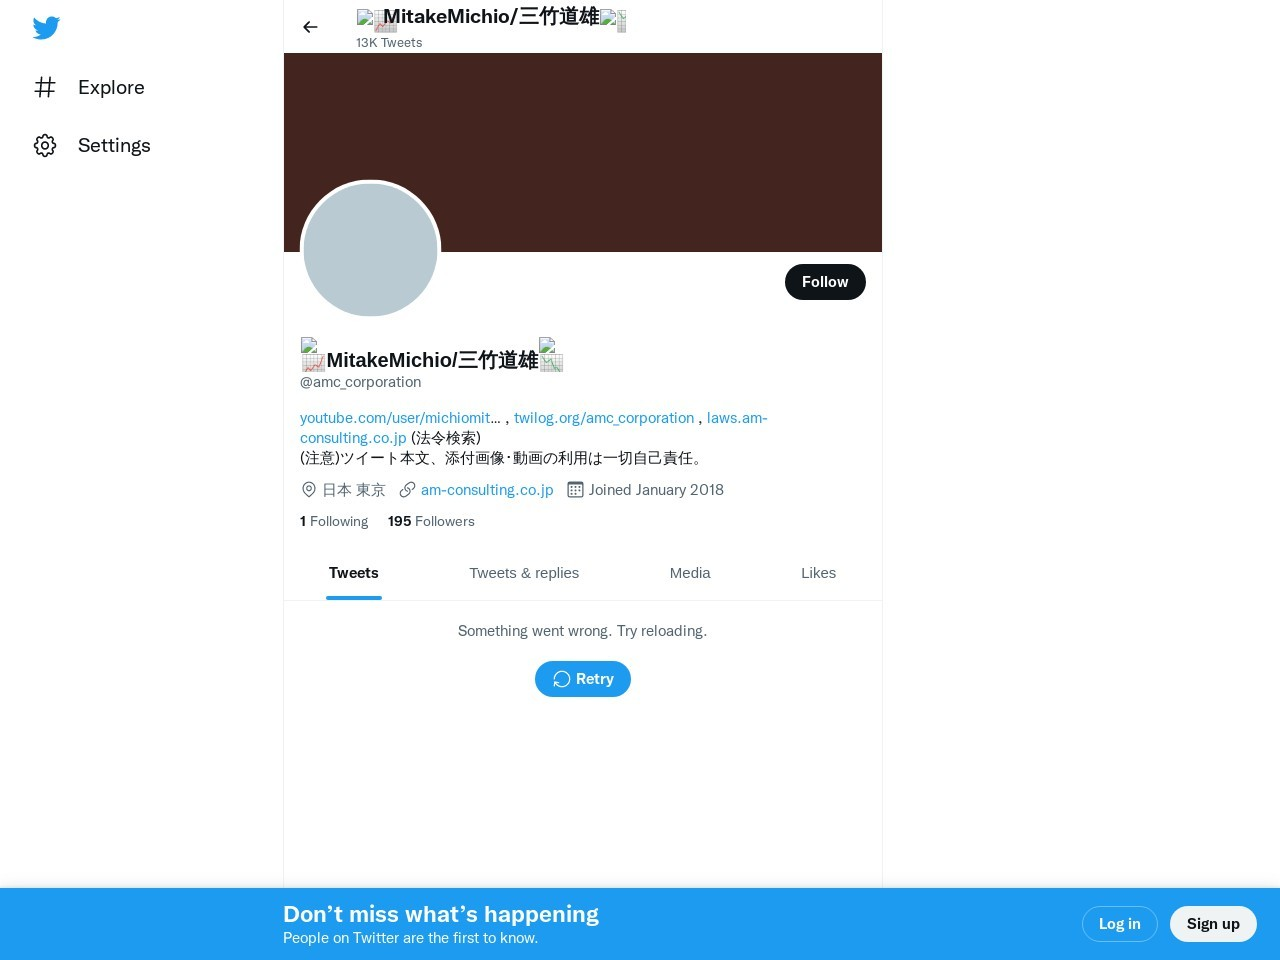 https://twitter.com/amc_corporation